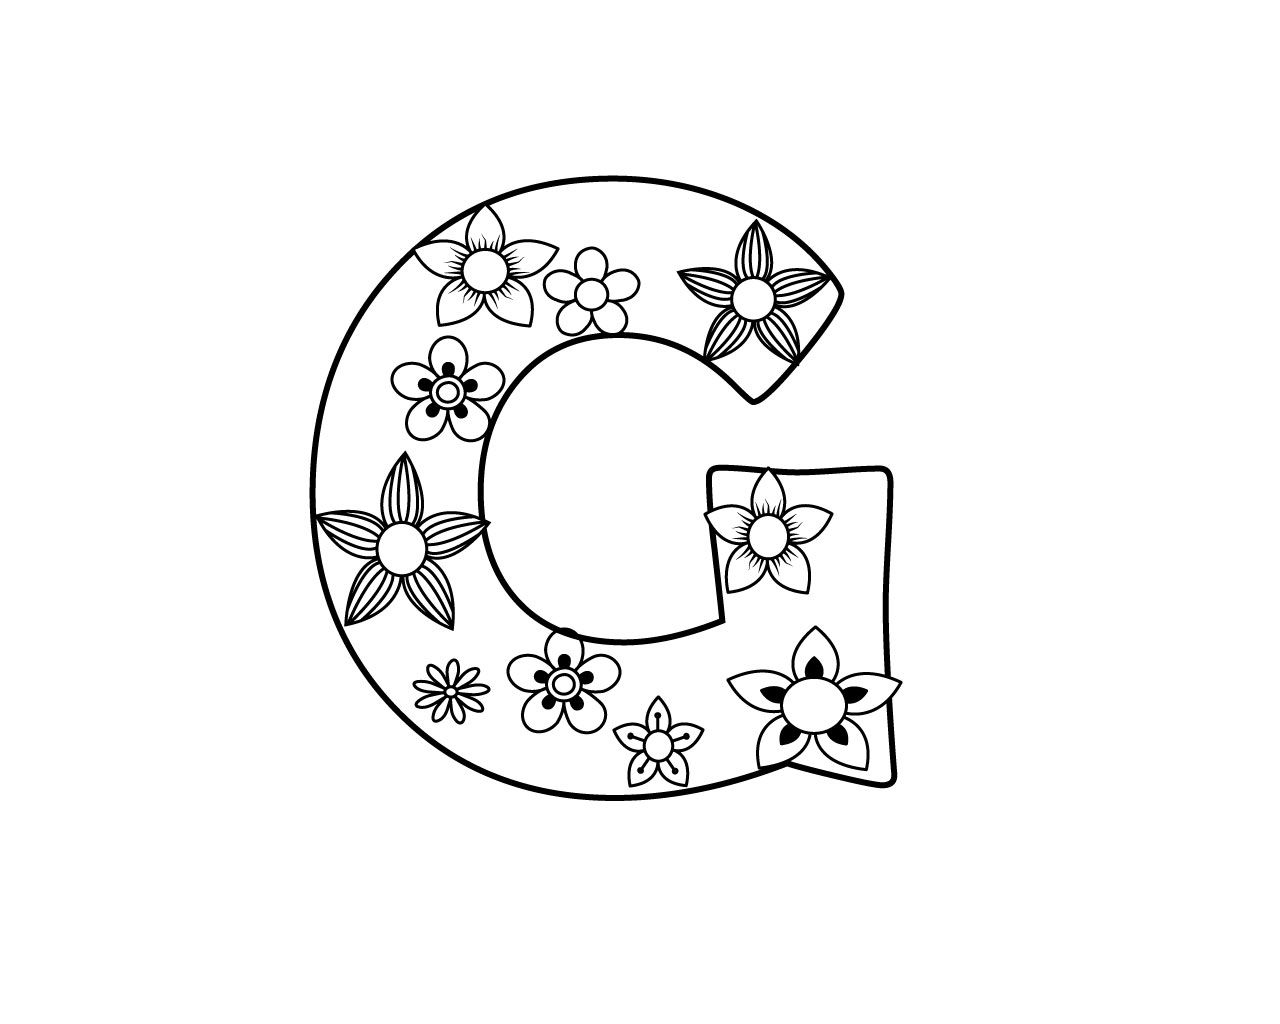 Letter g coloring pages free printable we are providing some amazing letter g coloring pages free printable also seeletter h coloring pages letter g